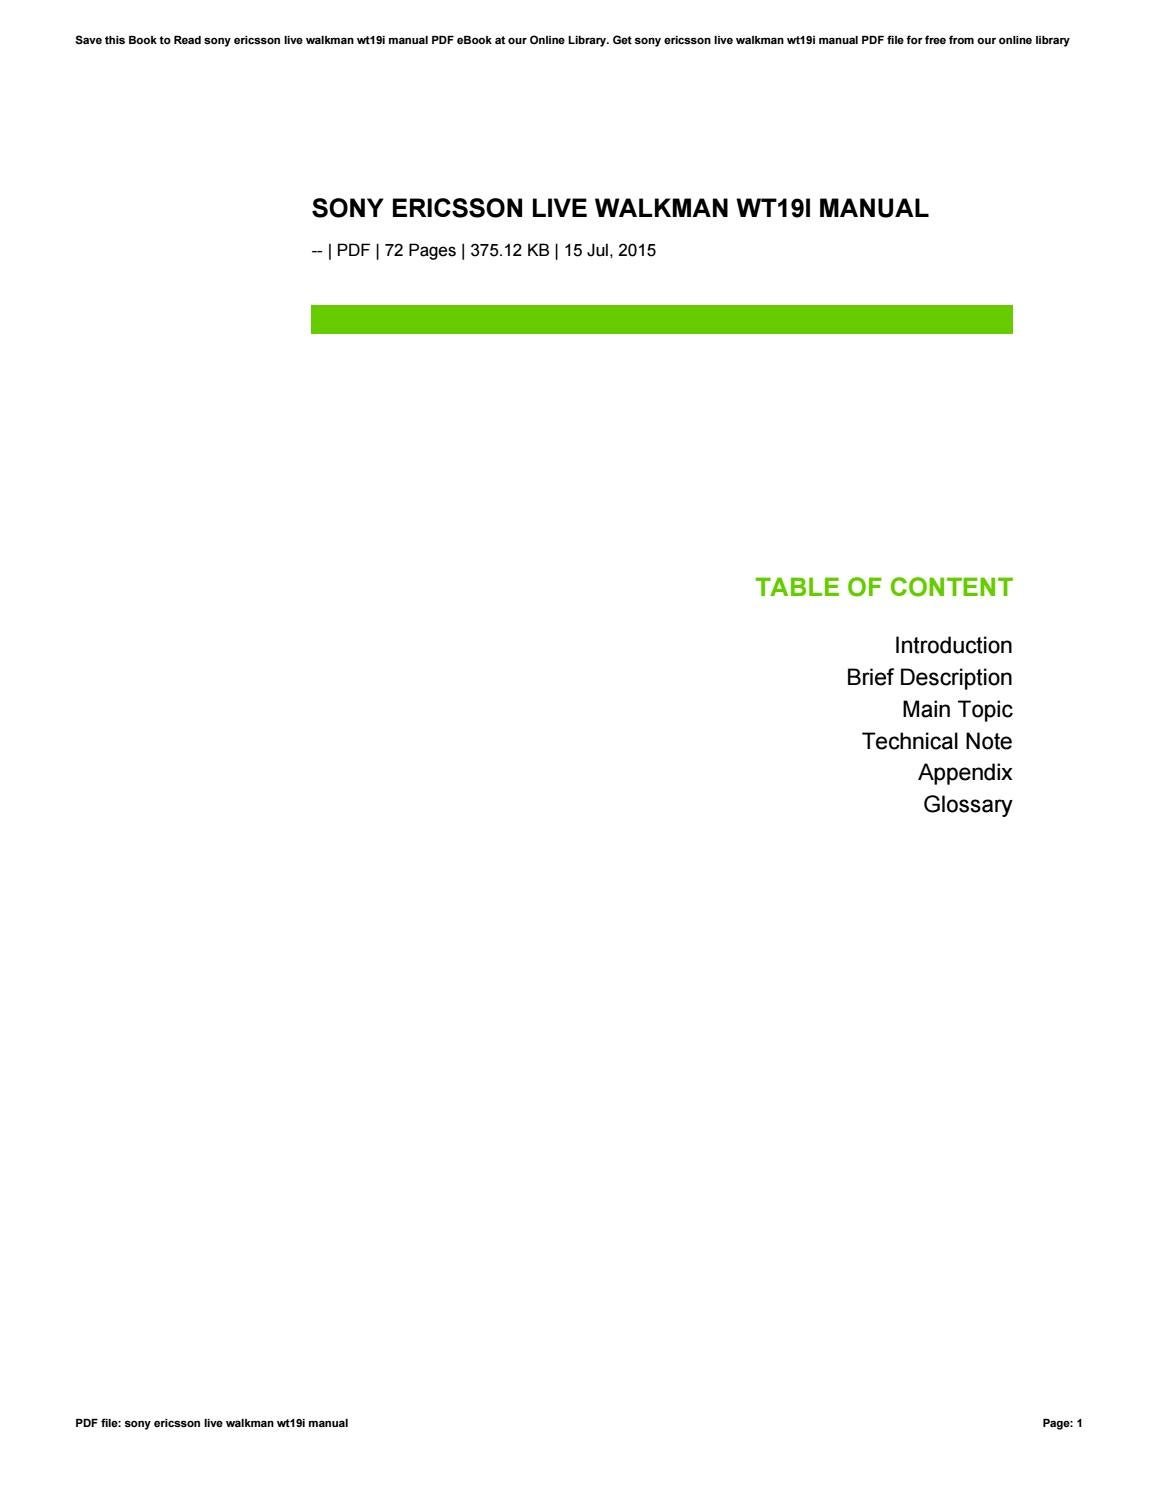 sony ericsson live walkman wt19i manual by mnode179 issuu rh issuu com Live Simple Quotes Live On Stage